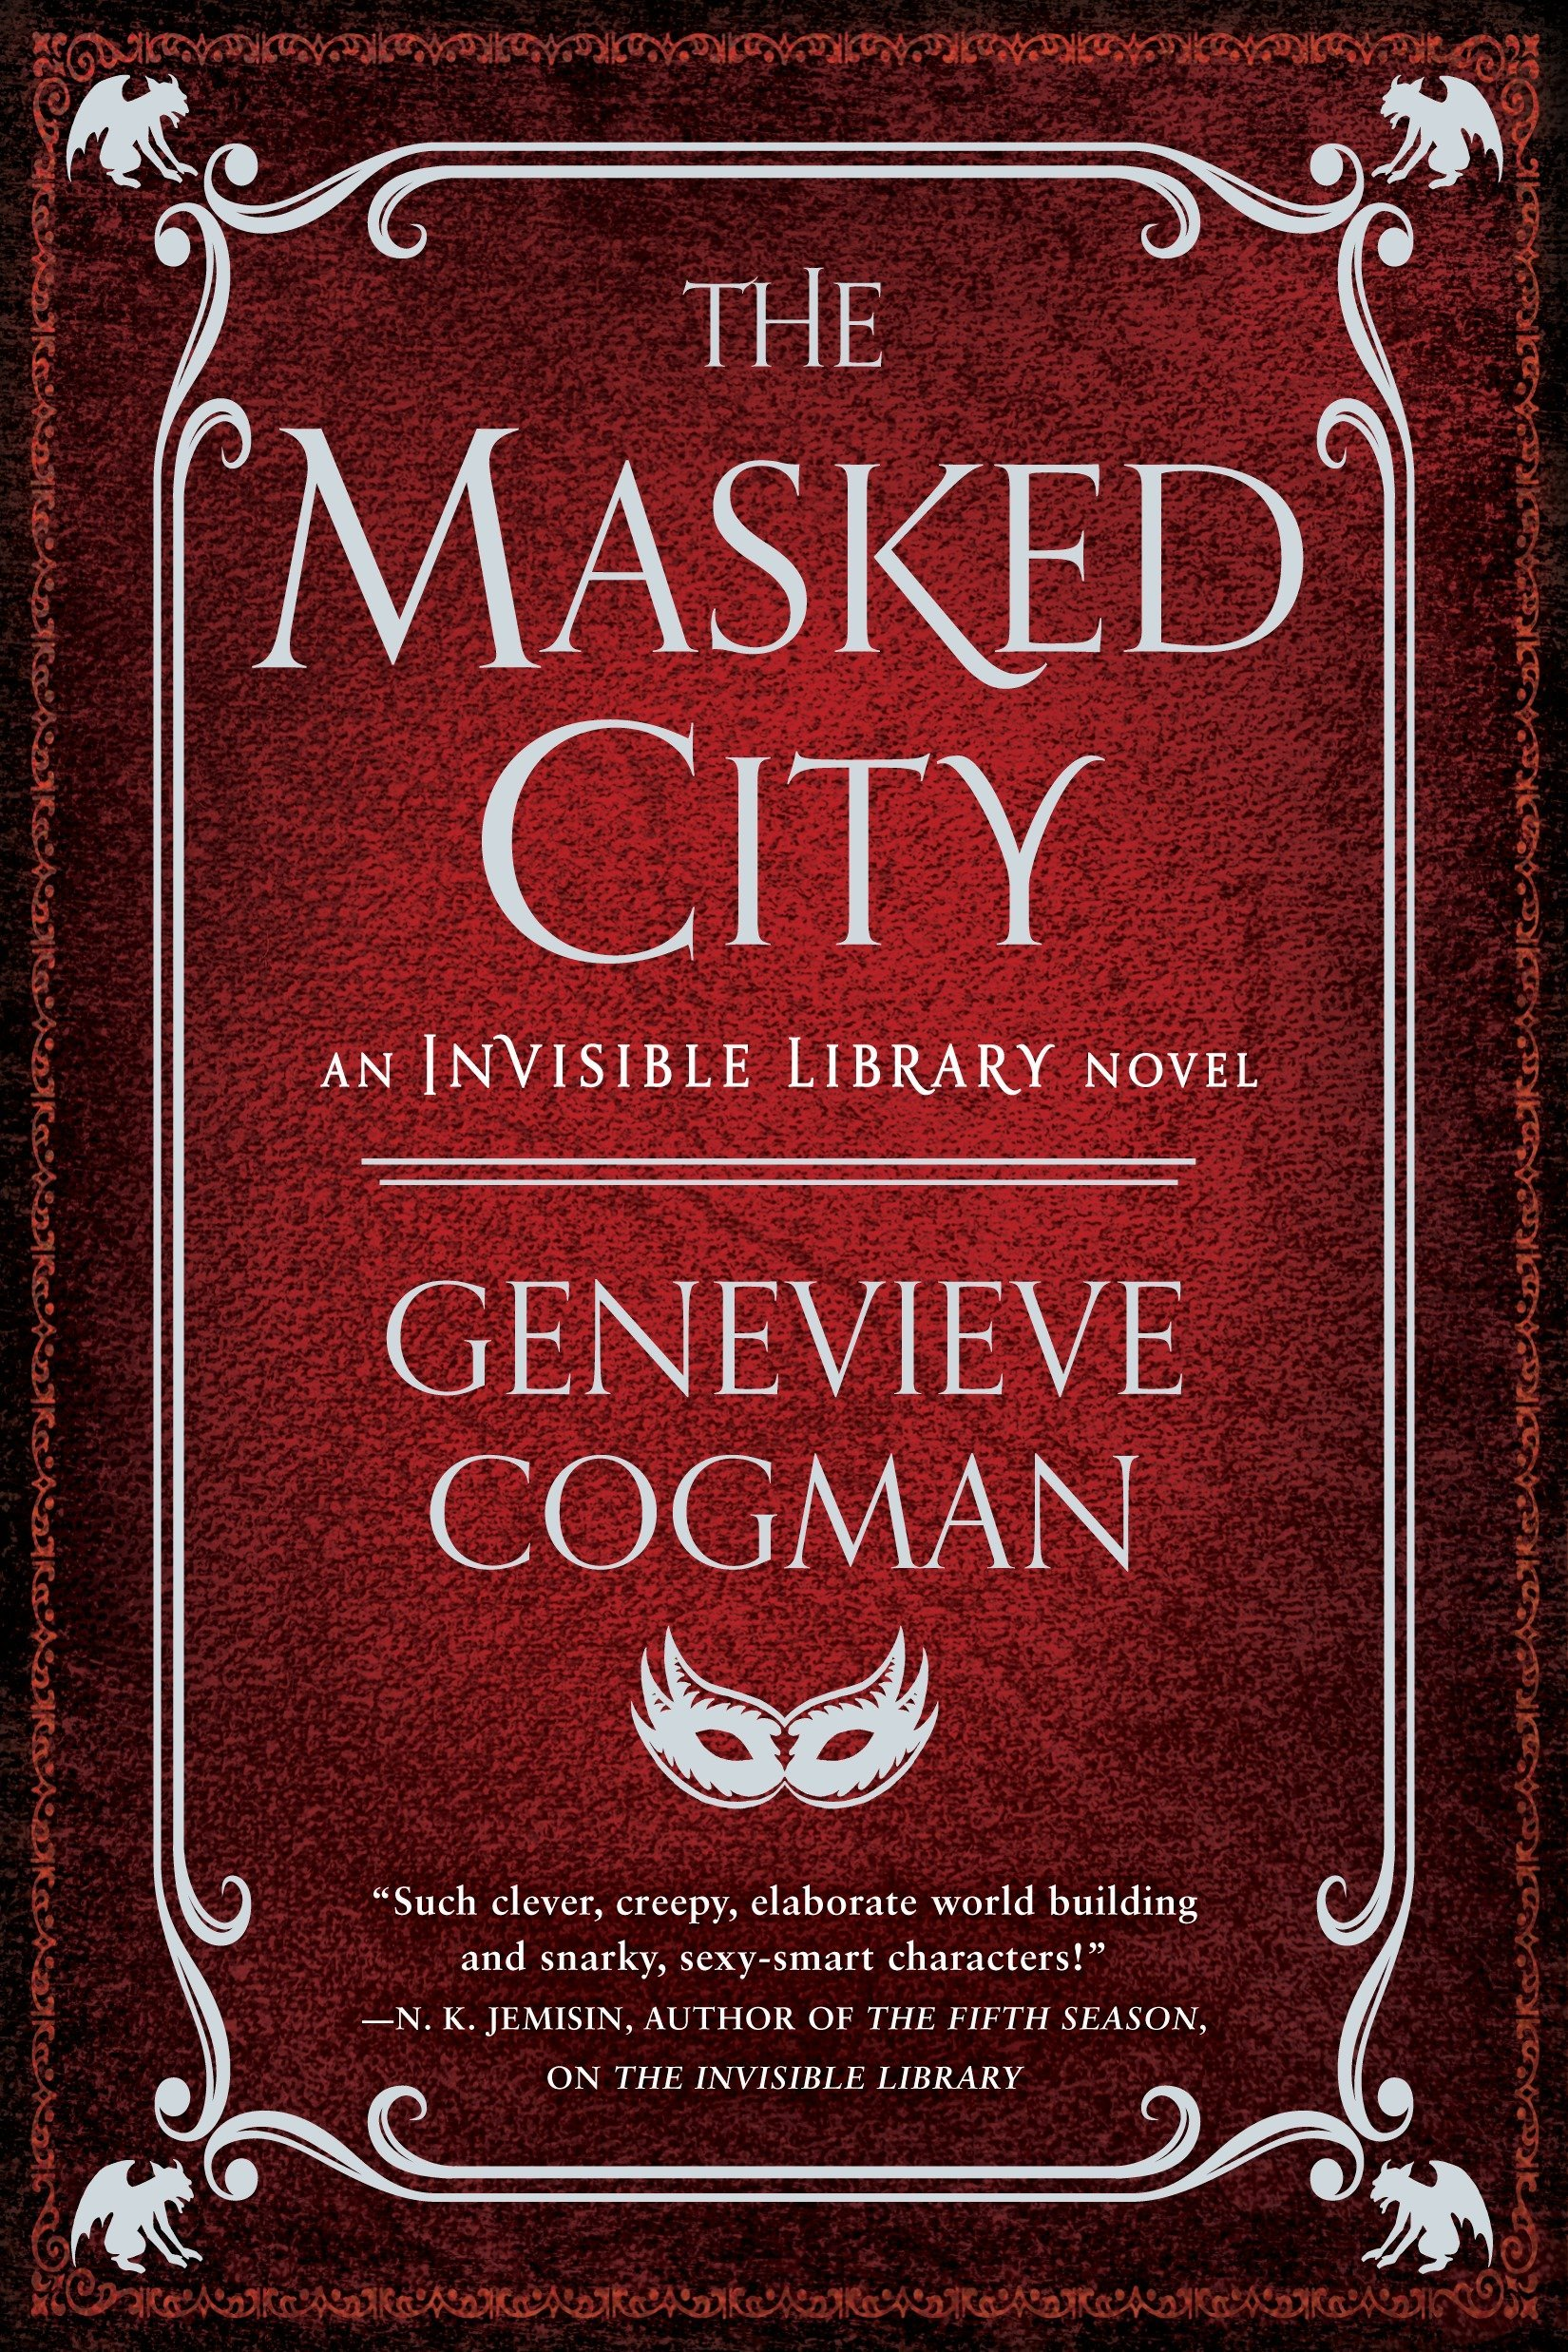 The Masked City (The Invisible Library Novel): Cogman, Genevieve ...